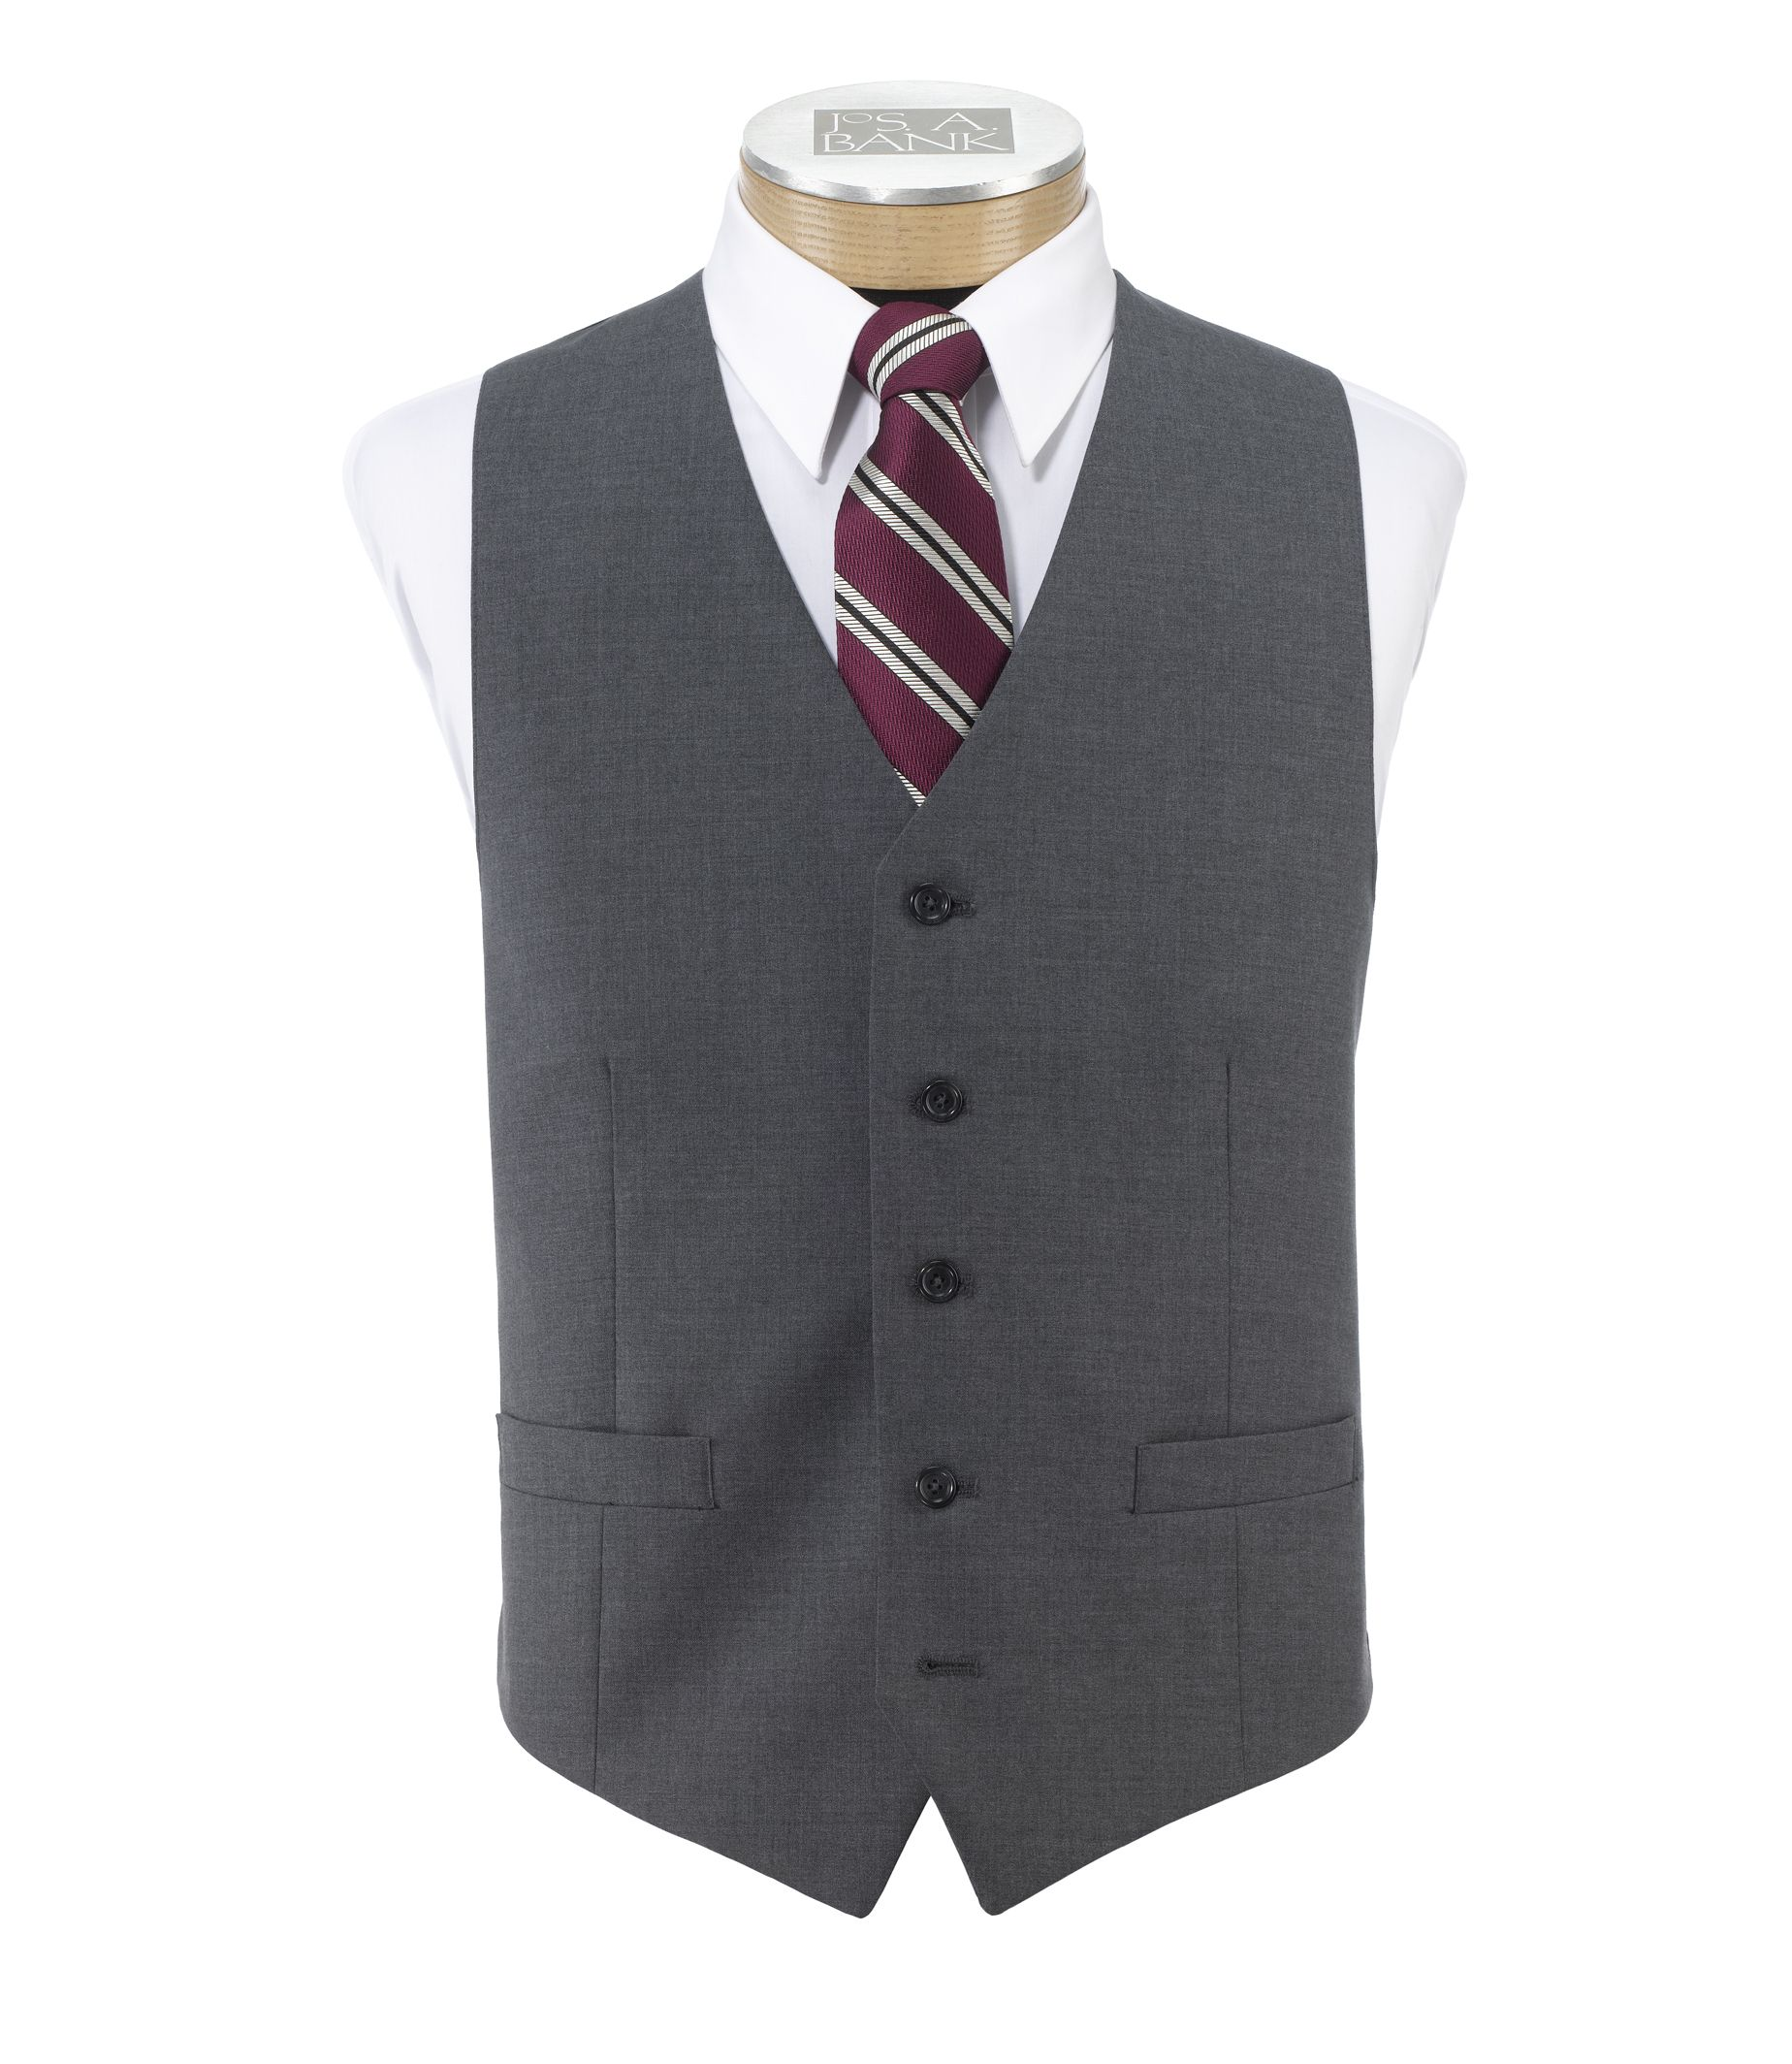 Jos a bank men 39 s factory classic suit seperates vest for Jos a bank shirt review